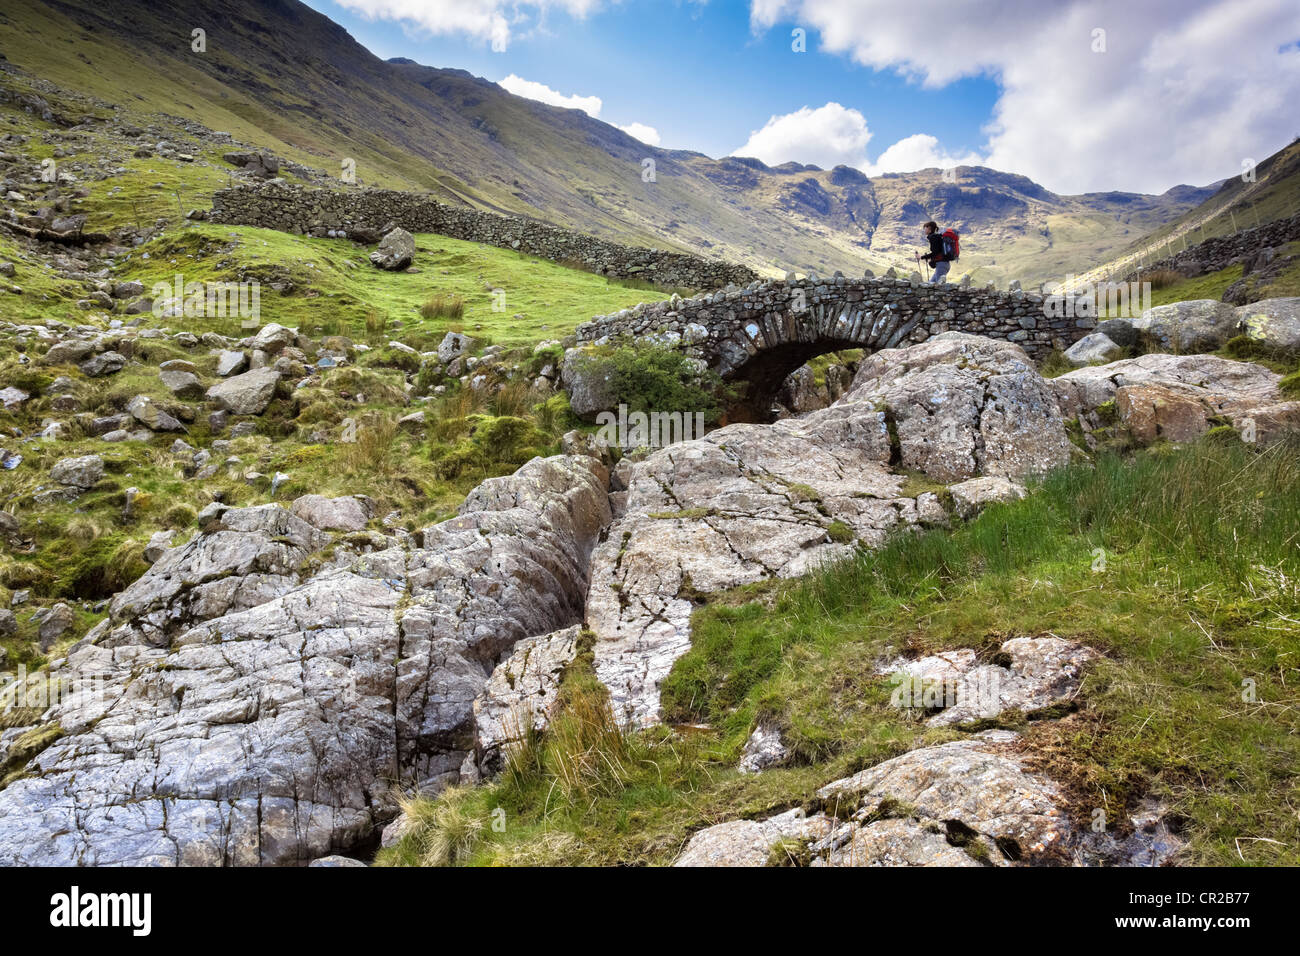 A hiker crosses Stockley Bridge on a bright spring day from Seathwaite Fell in the Lake District, Cumbria UK. Stock Photo